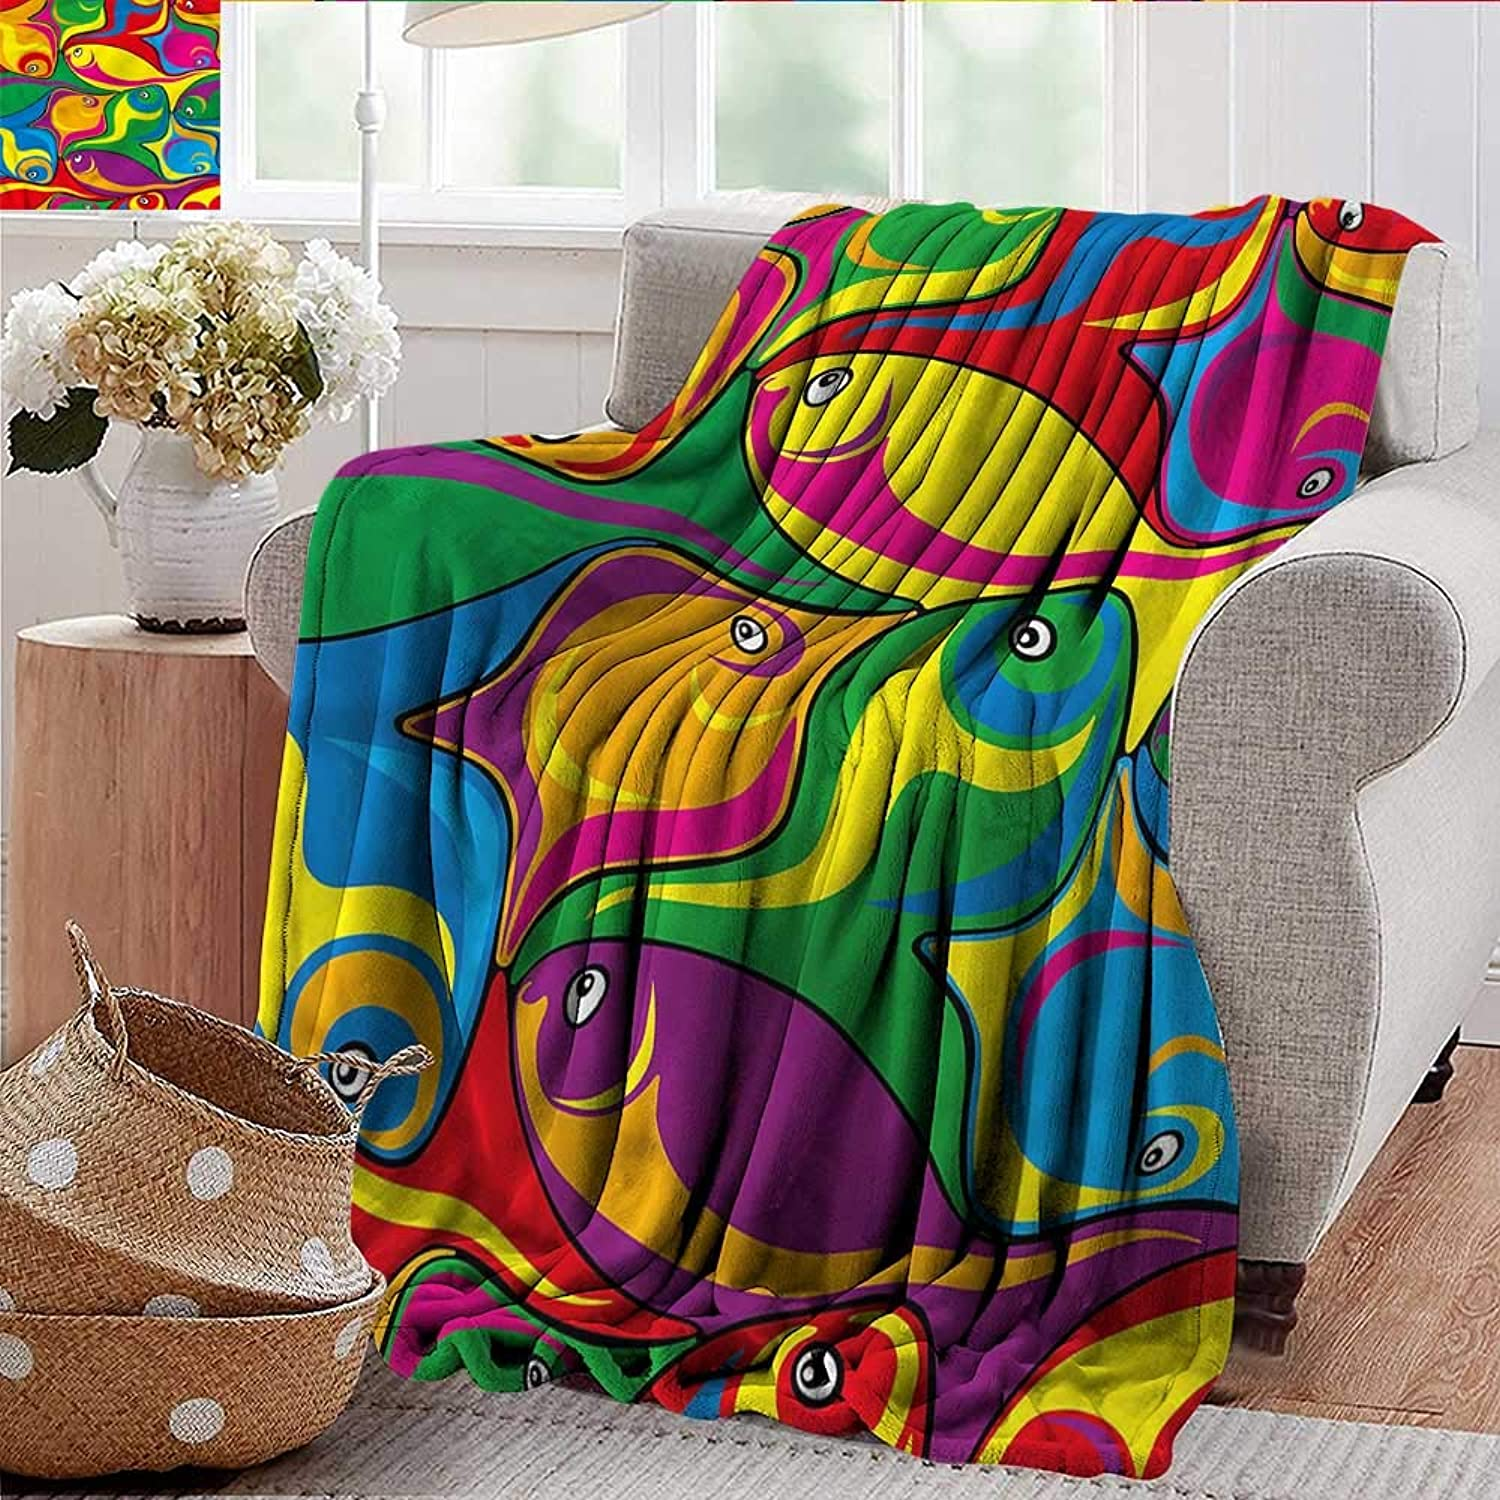 Xaviera Doherty Weighted Blanket for Kids Cartoon,Funky Groovy Fish Abstract Soft Summer Cooling Lightweight Bed Blanket 50 x60